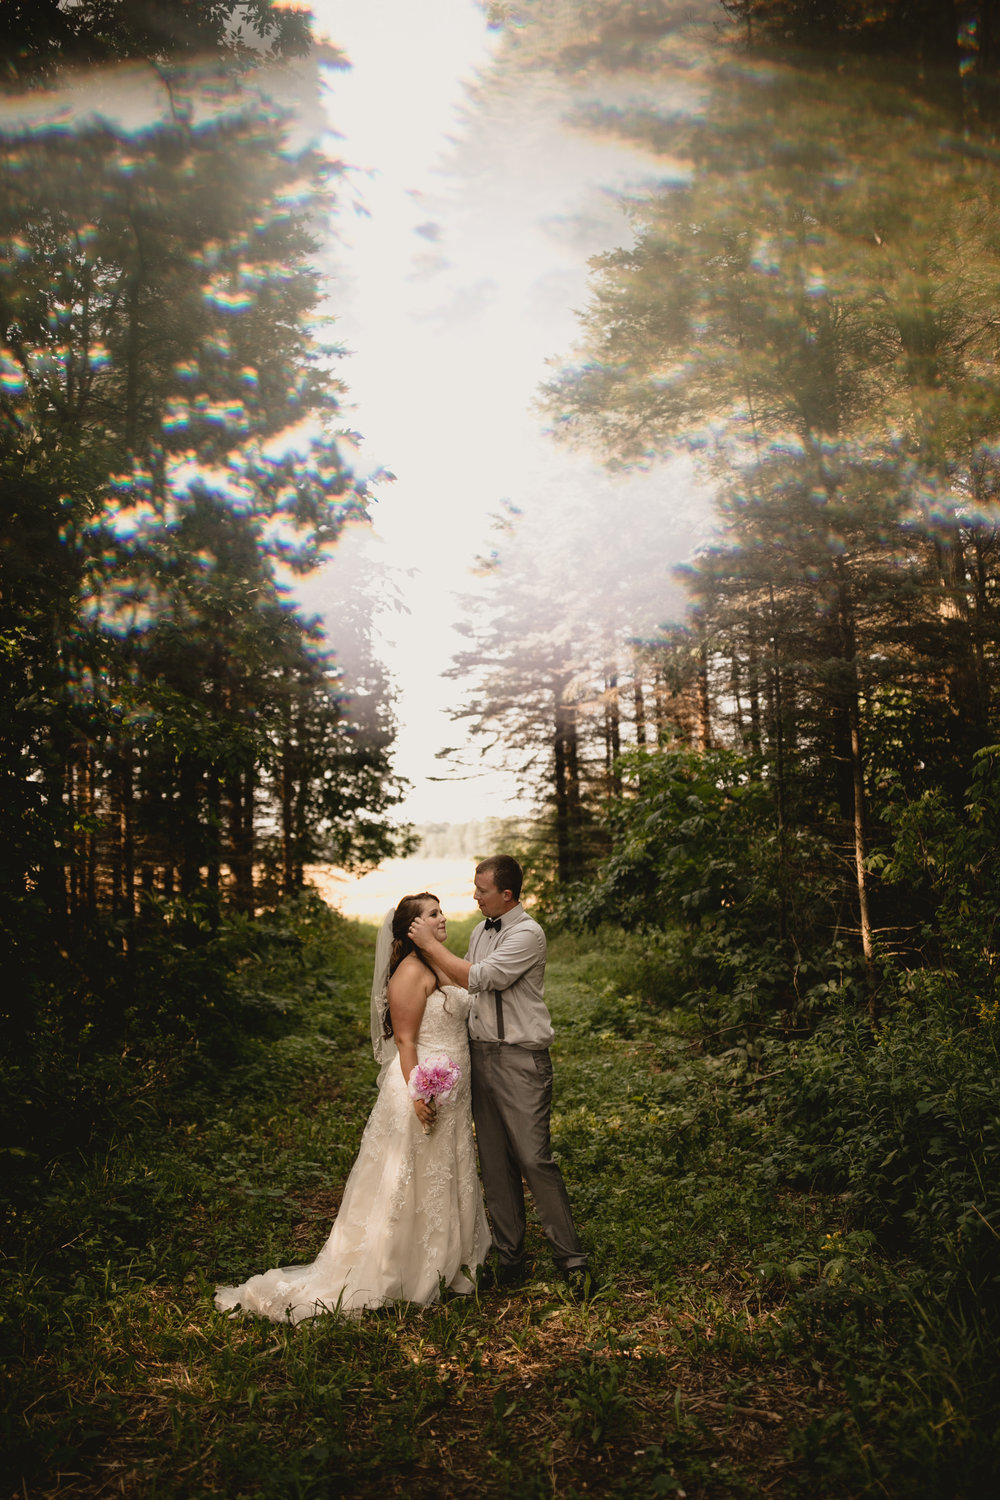 west-michigan-wedding-photographer-ludington-mi-trillium-creek-jaclyn-russ-776.jpg